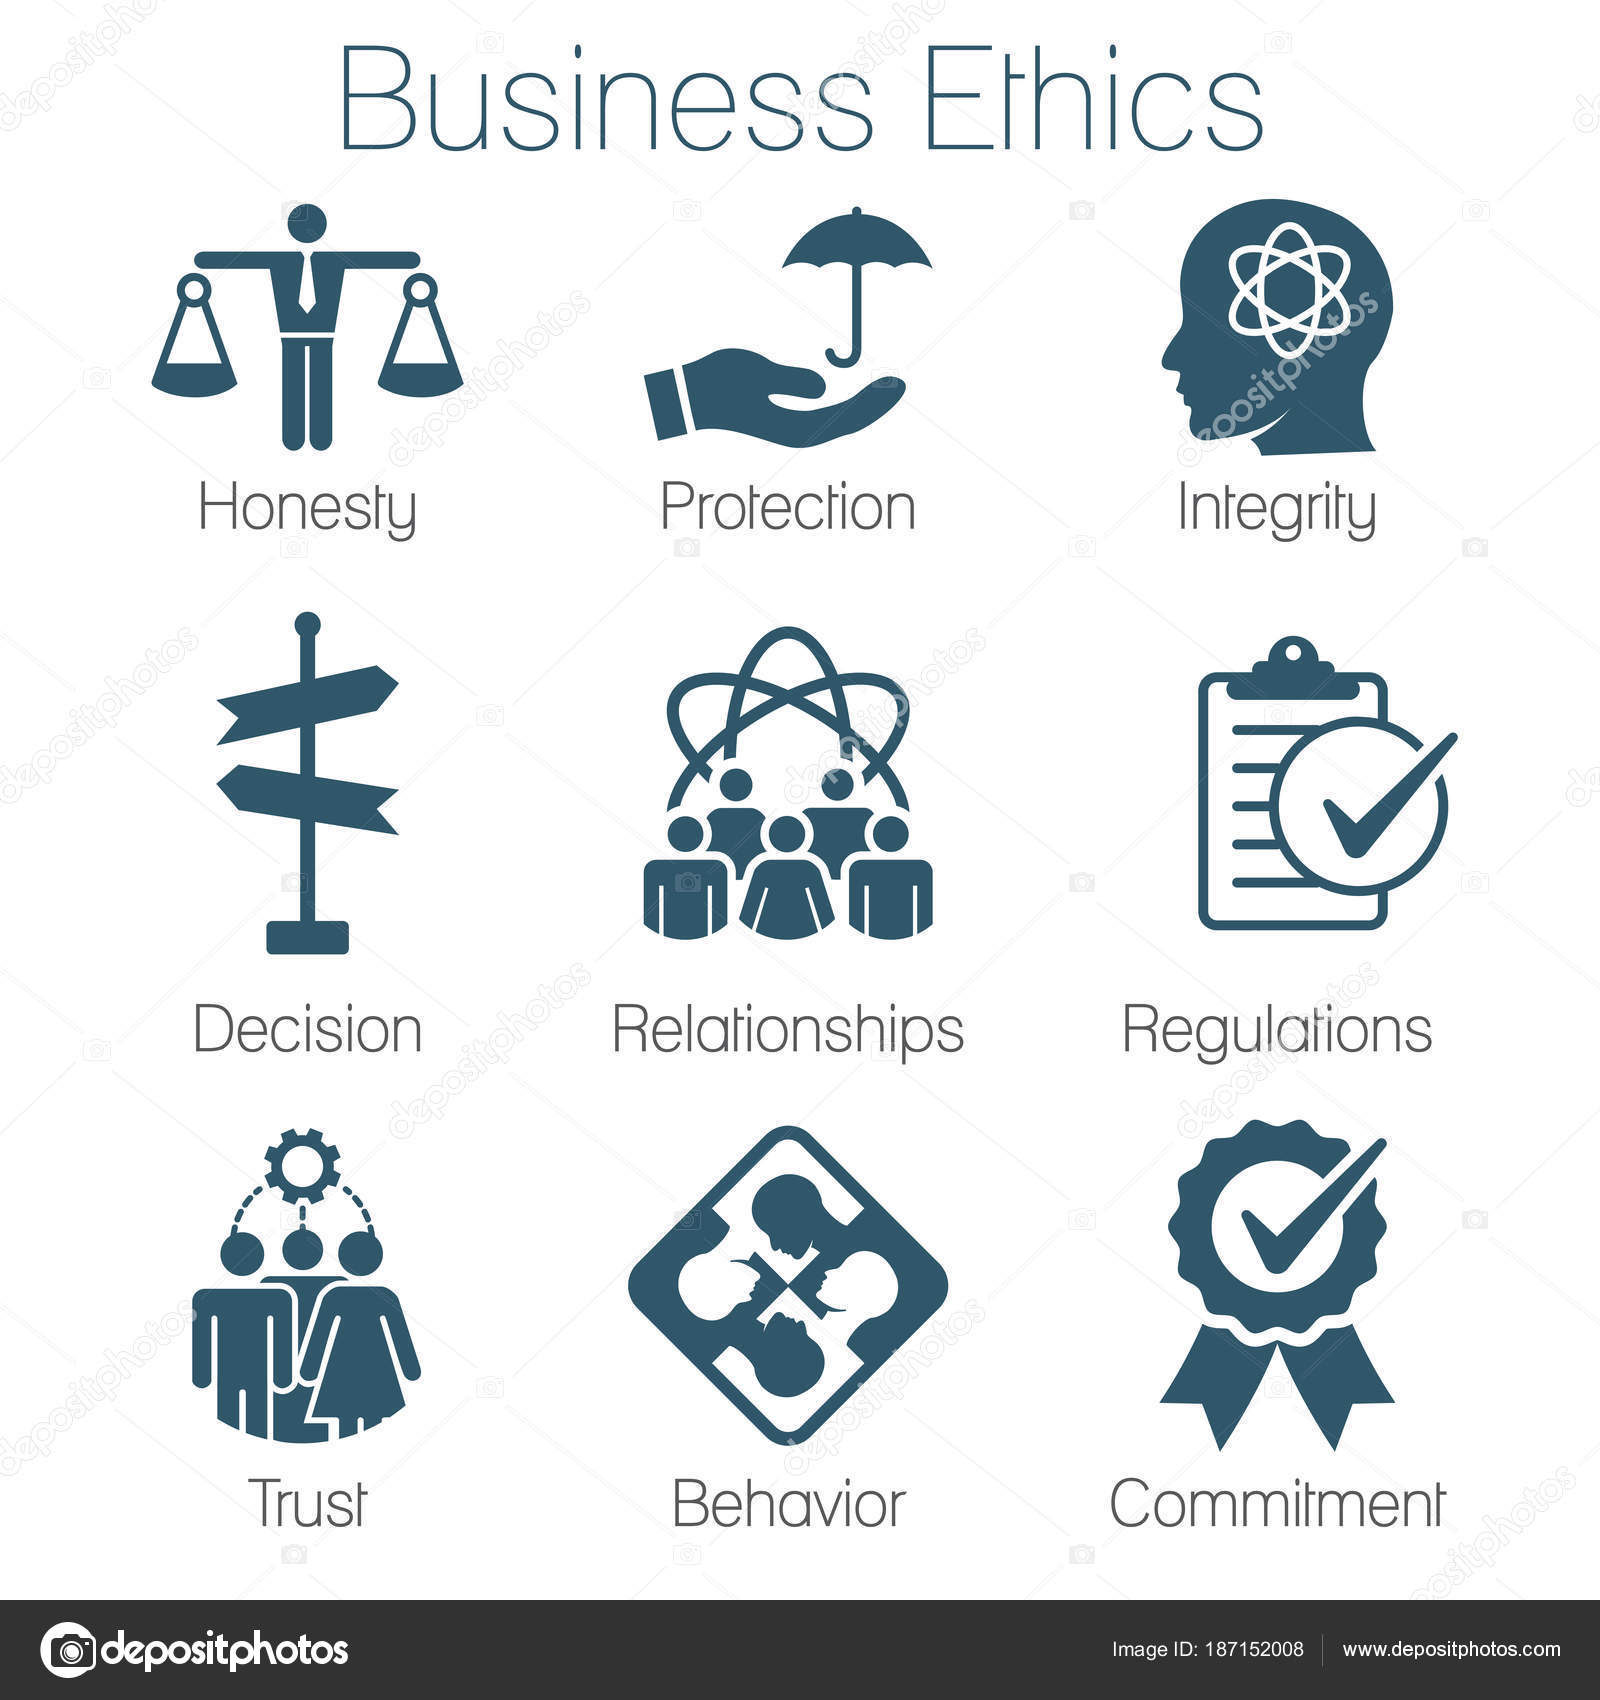 Business ethics solid icon set with honesty integrity commitme business ethics solid icon set with honesty integrity commitme stock vector biocorpaavc Image collections